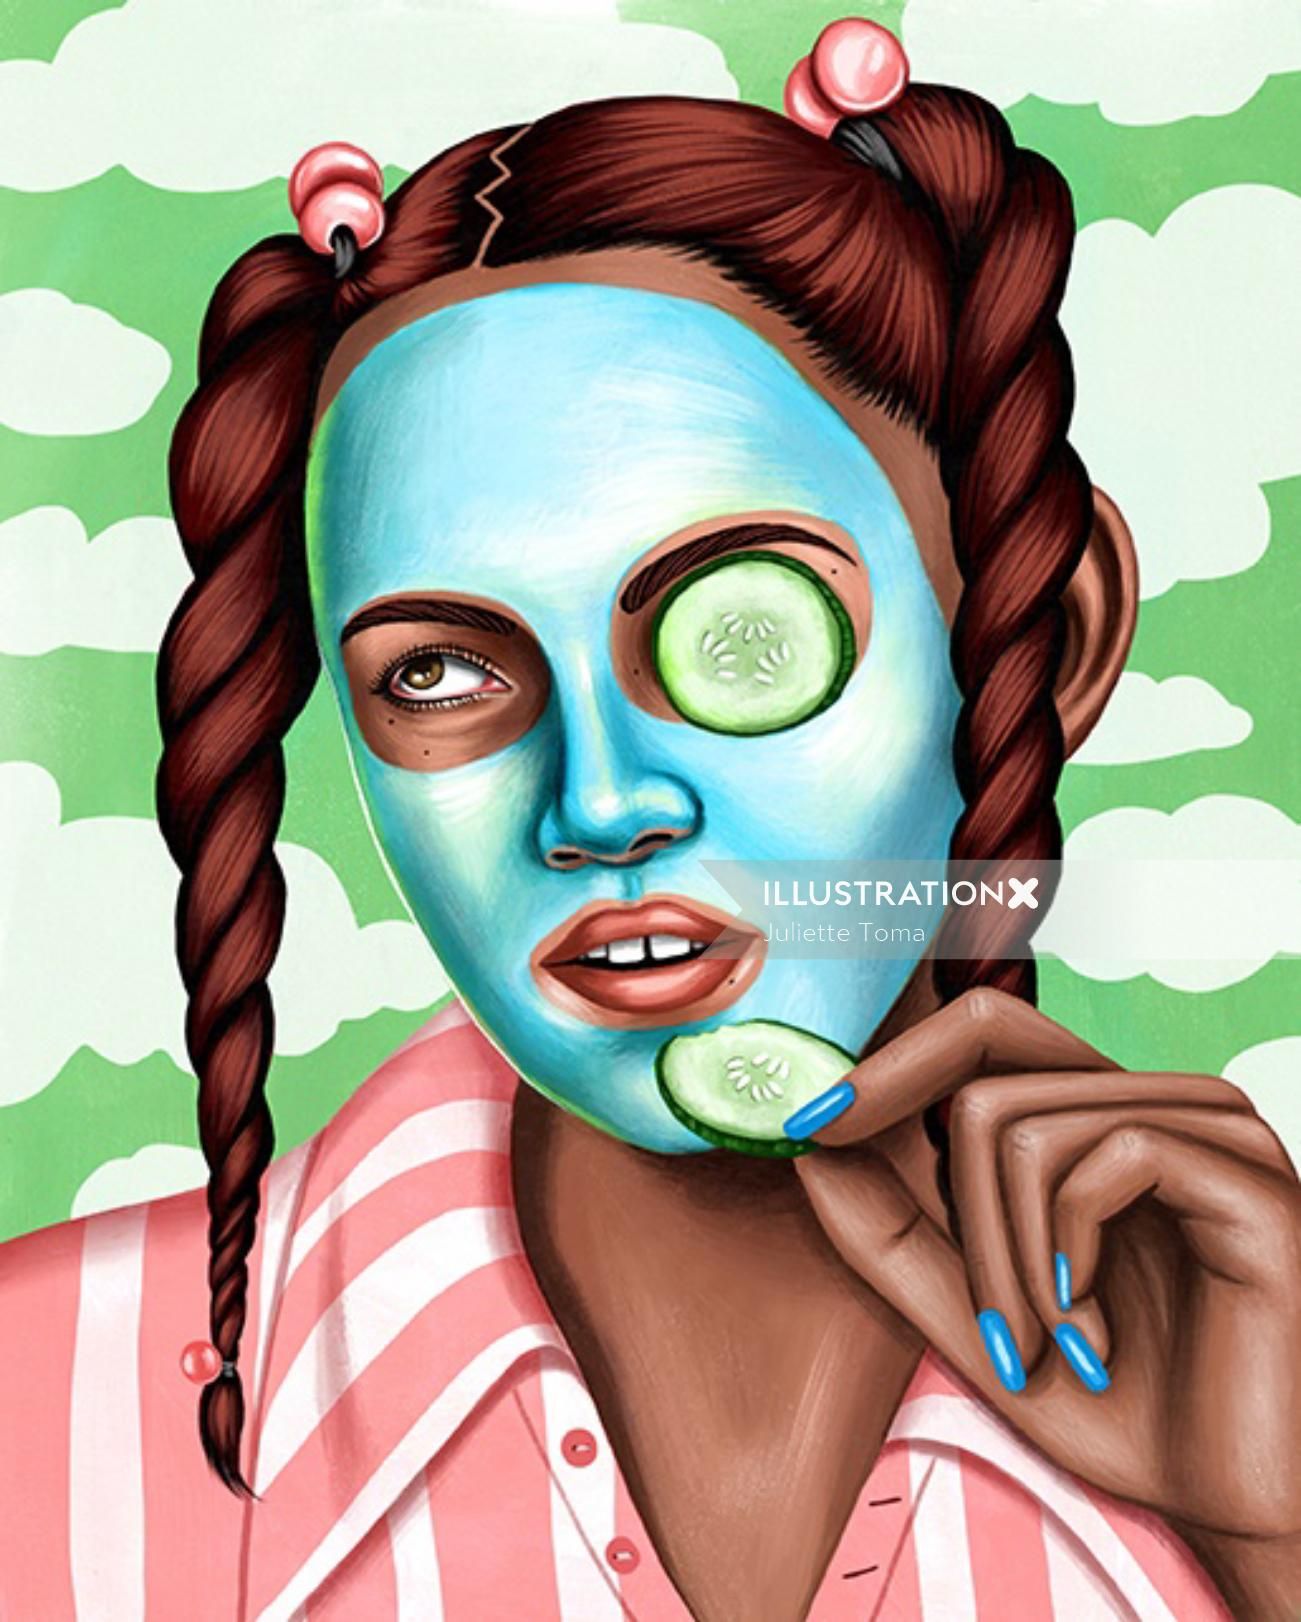 Portrait illustration of girl on makeup